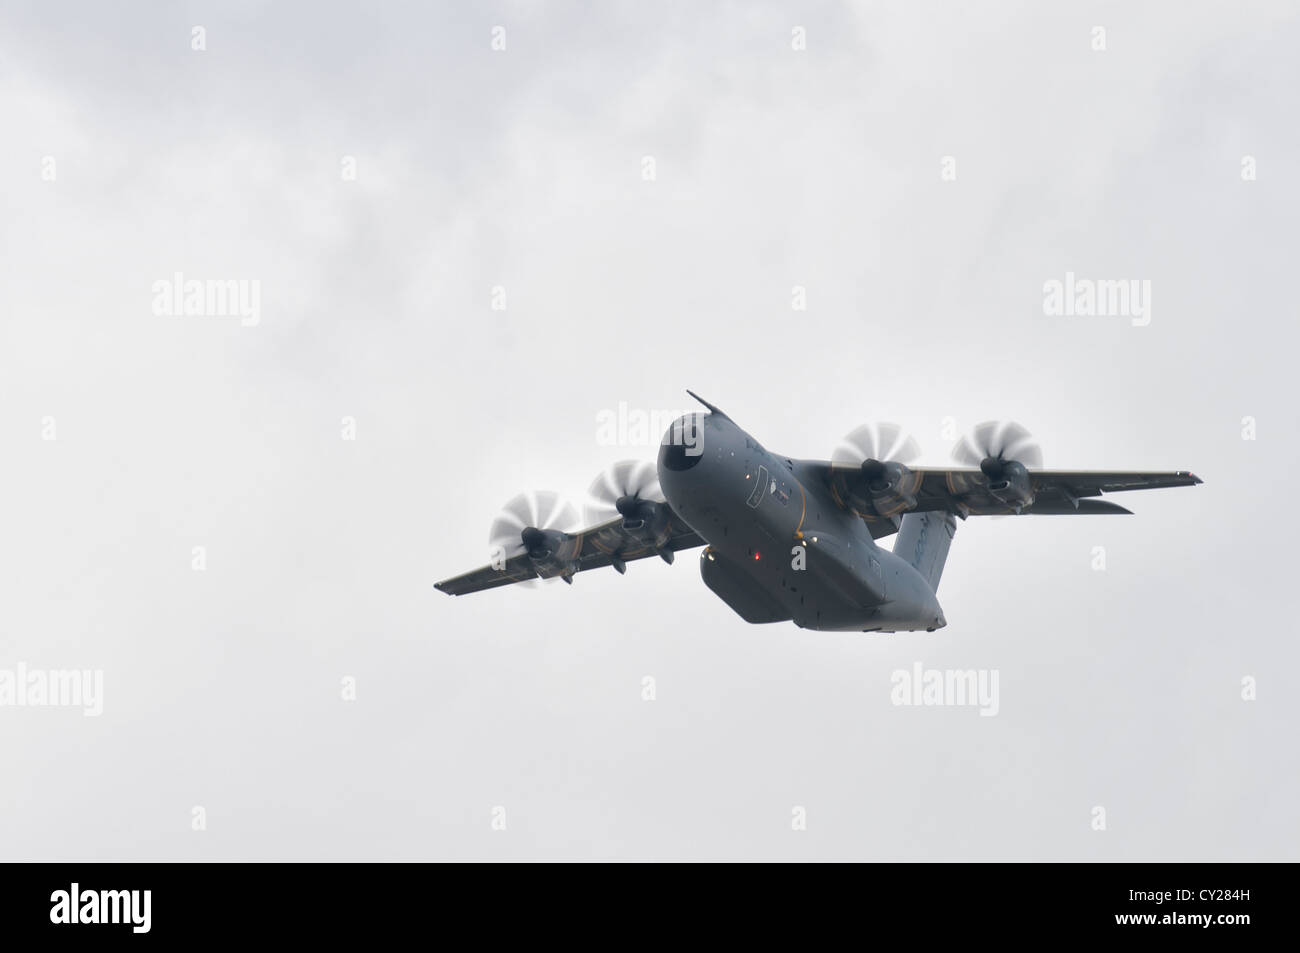 Airbus A400M Atlas turboprop military transport aircraft F-WWMZ from Airbus Military, Toulouse Airport France, displays - Stock Photo